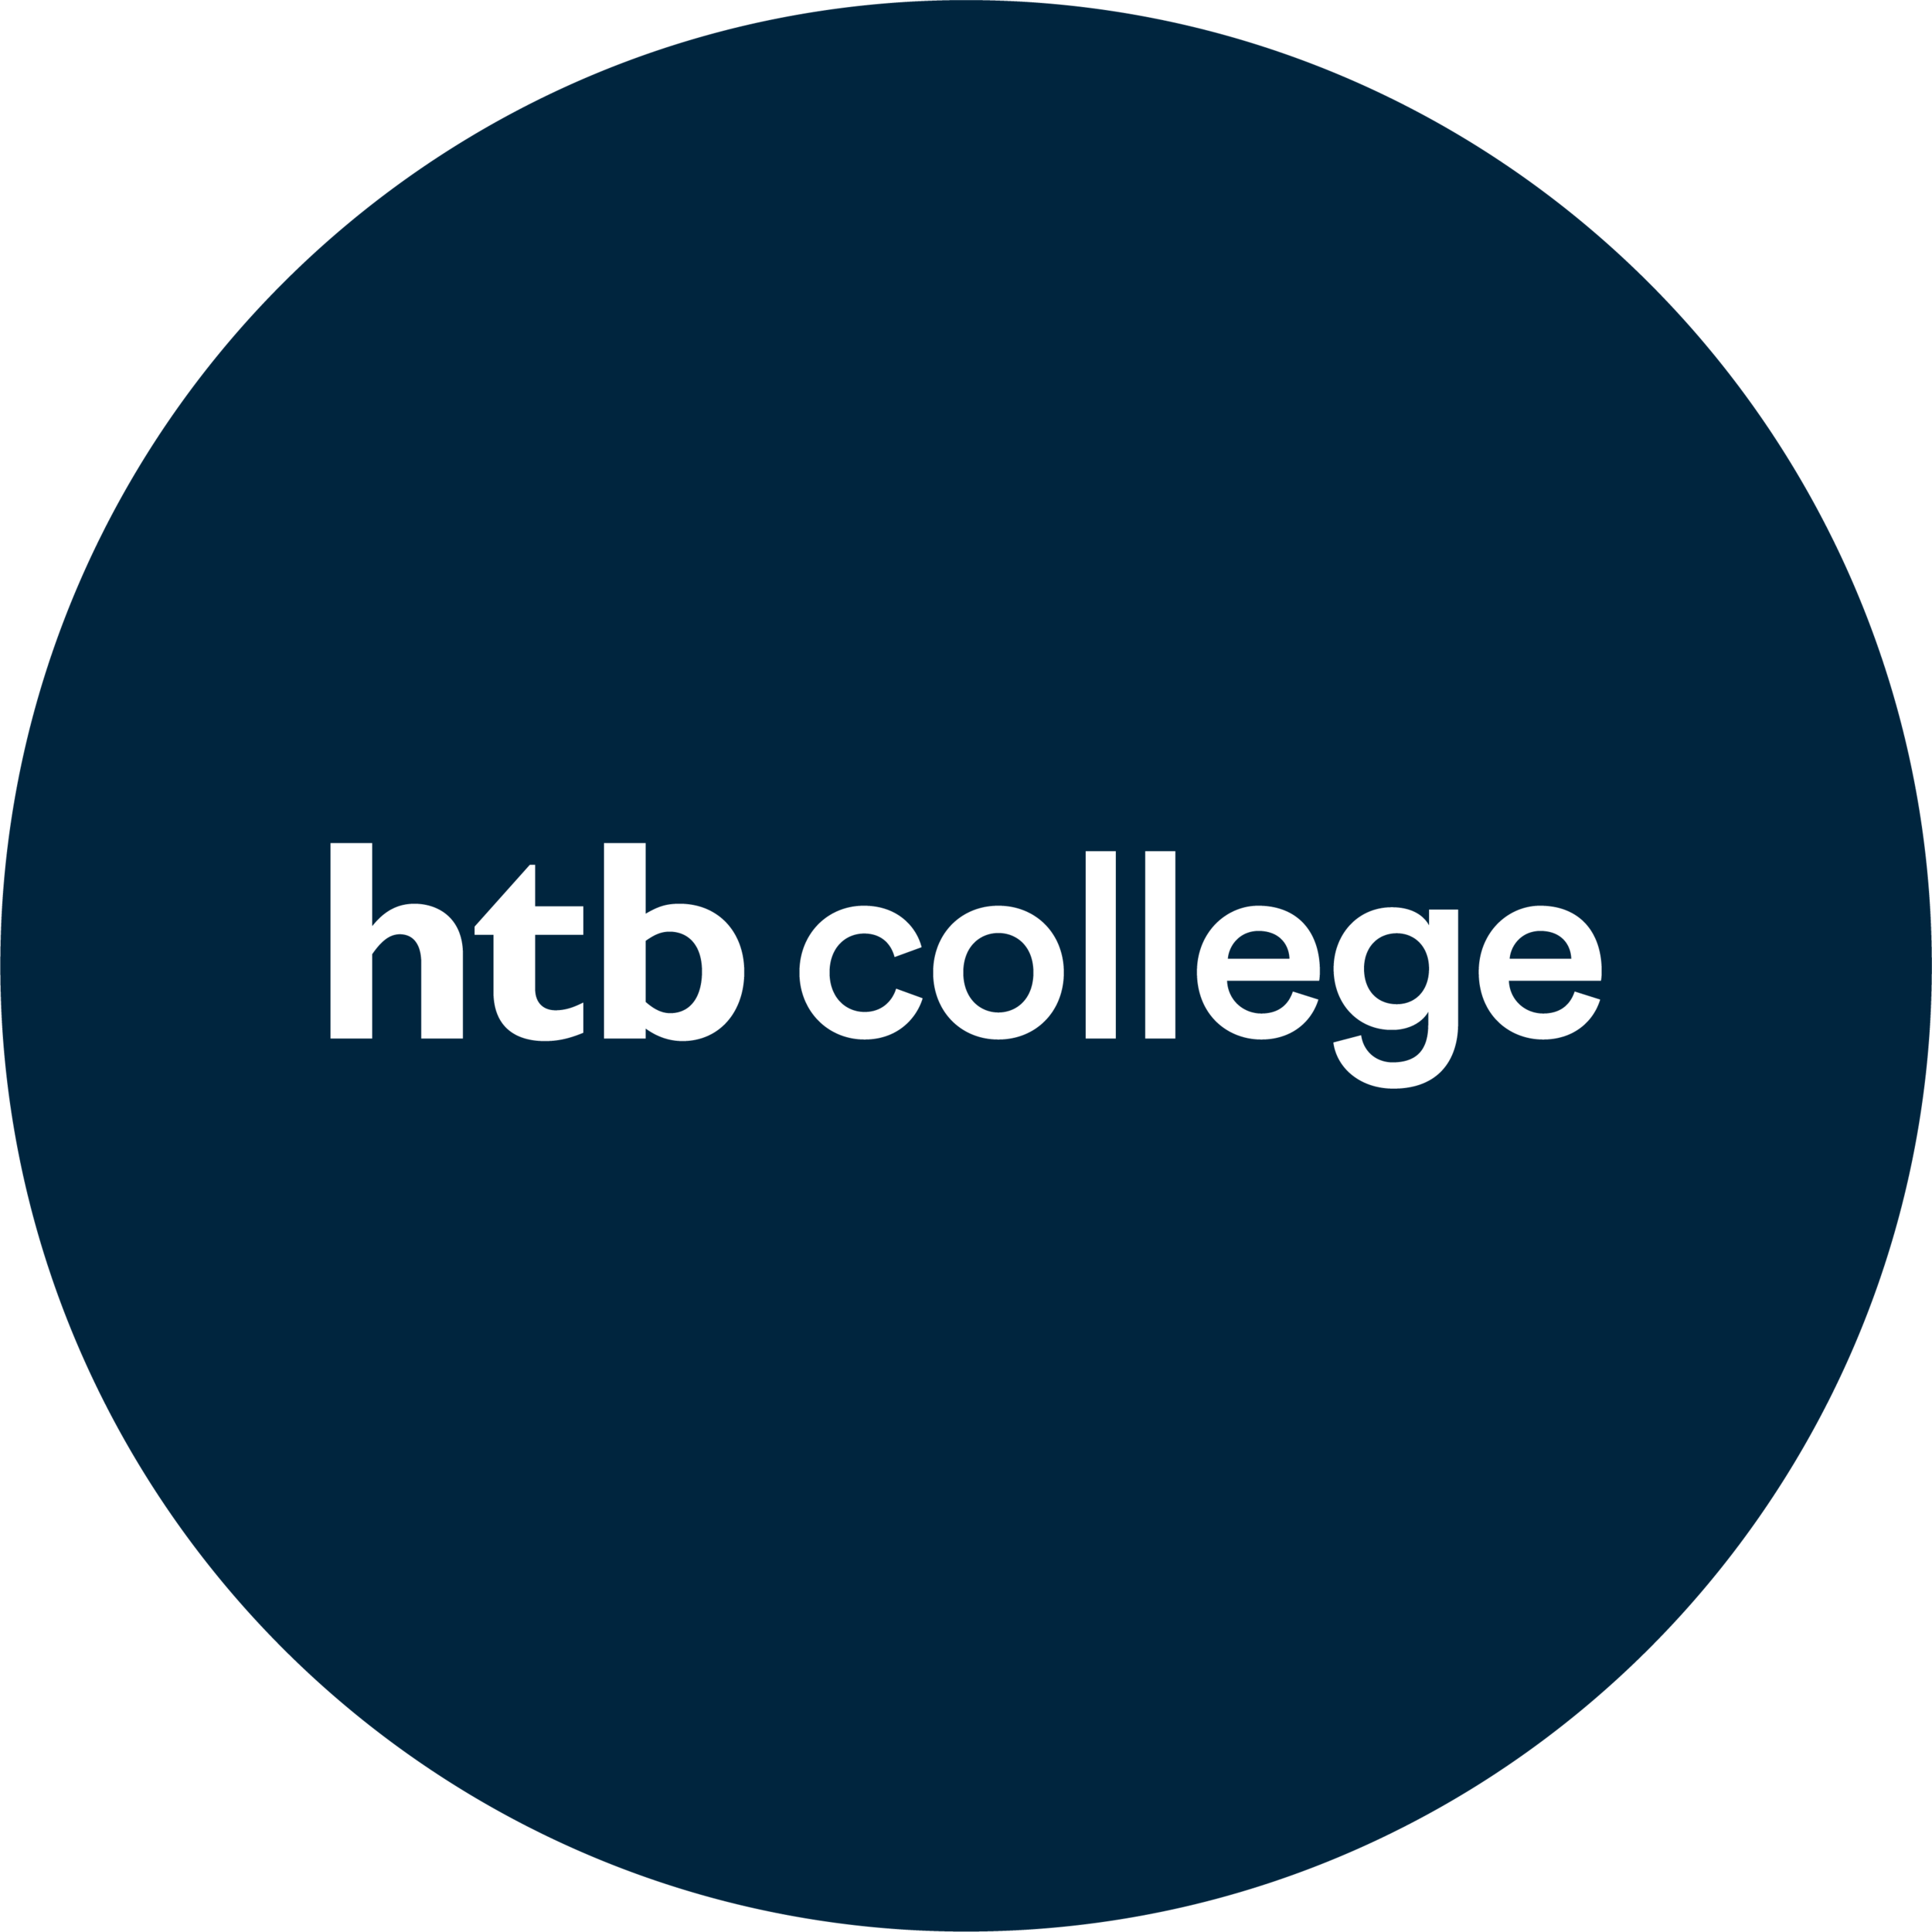 circle_navy_HTB_College.png